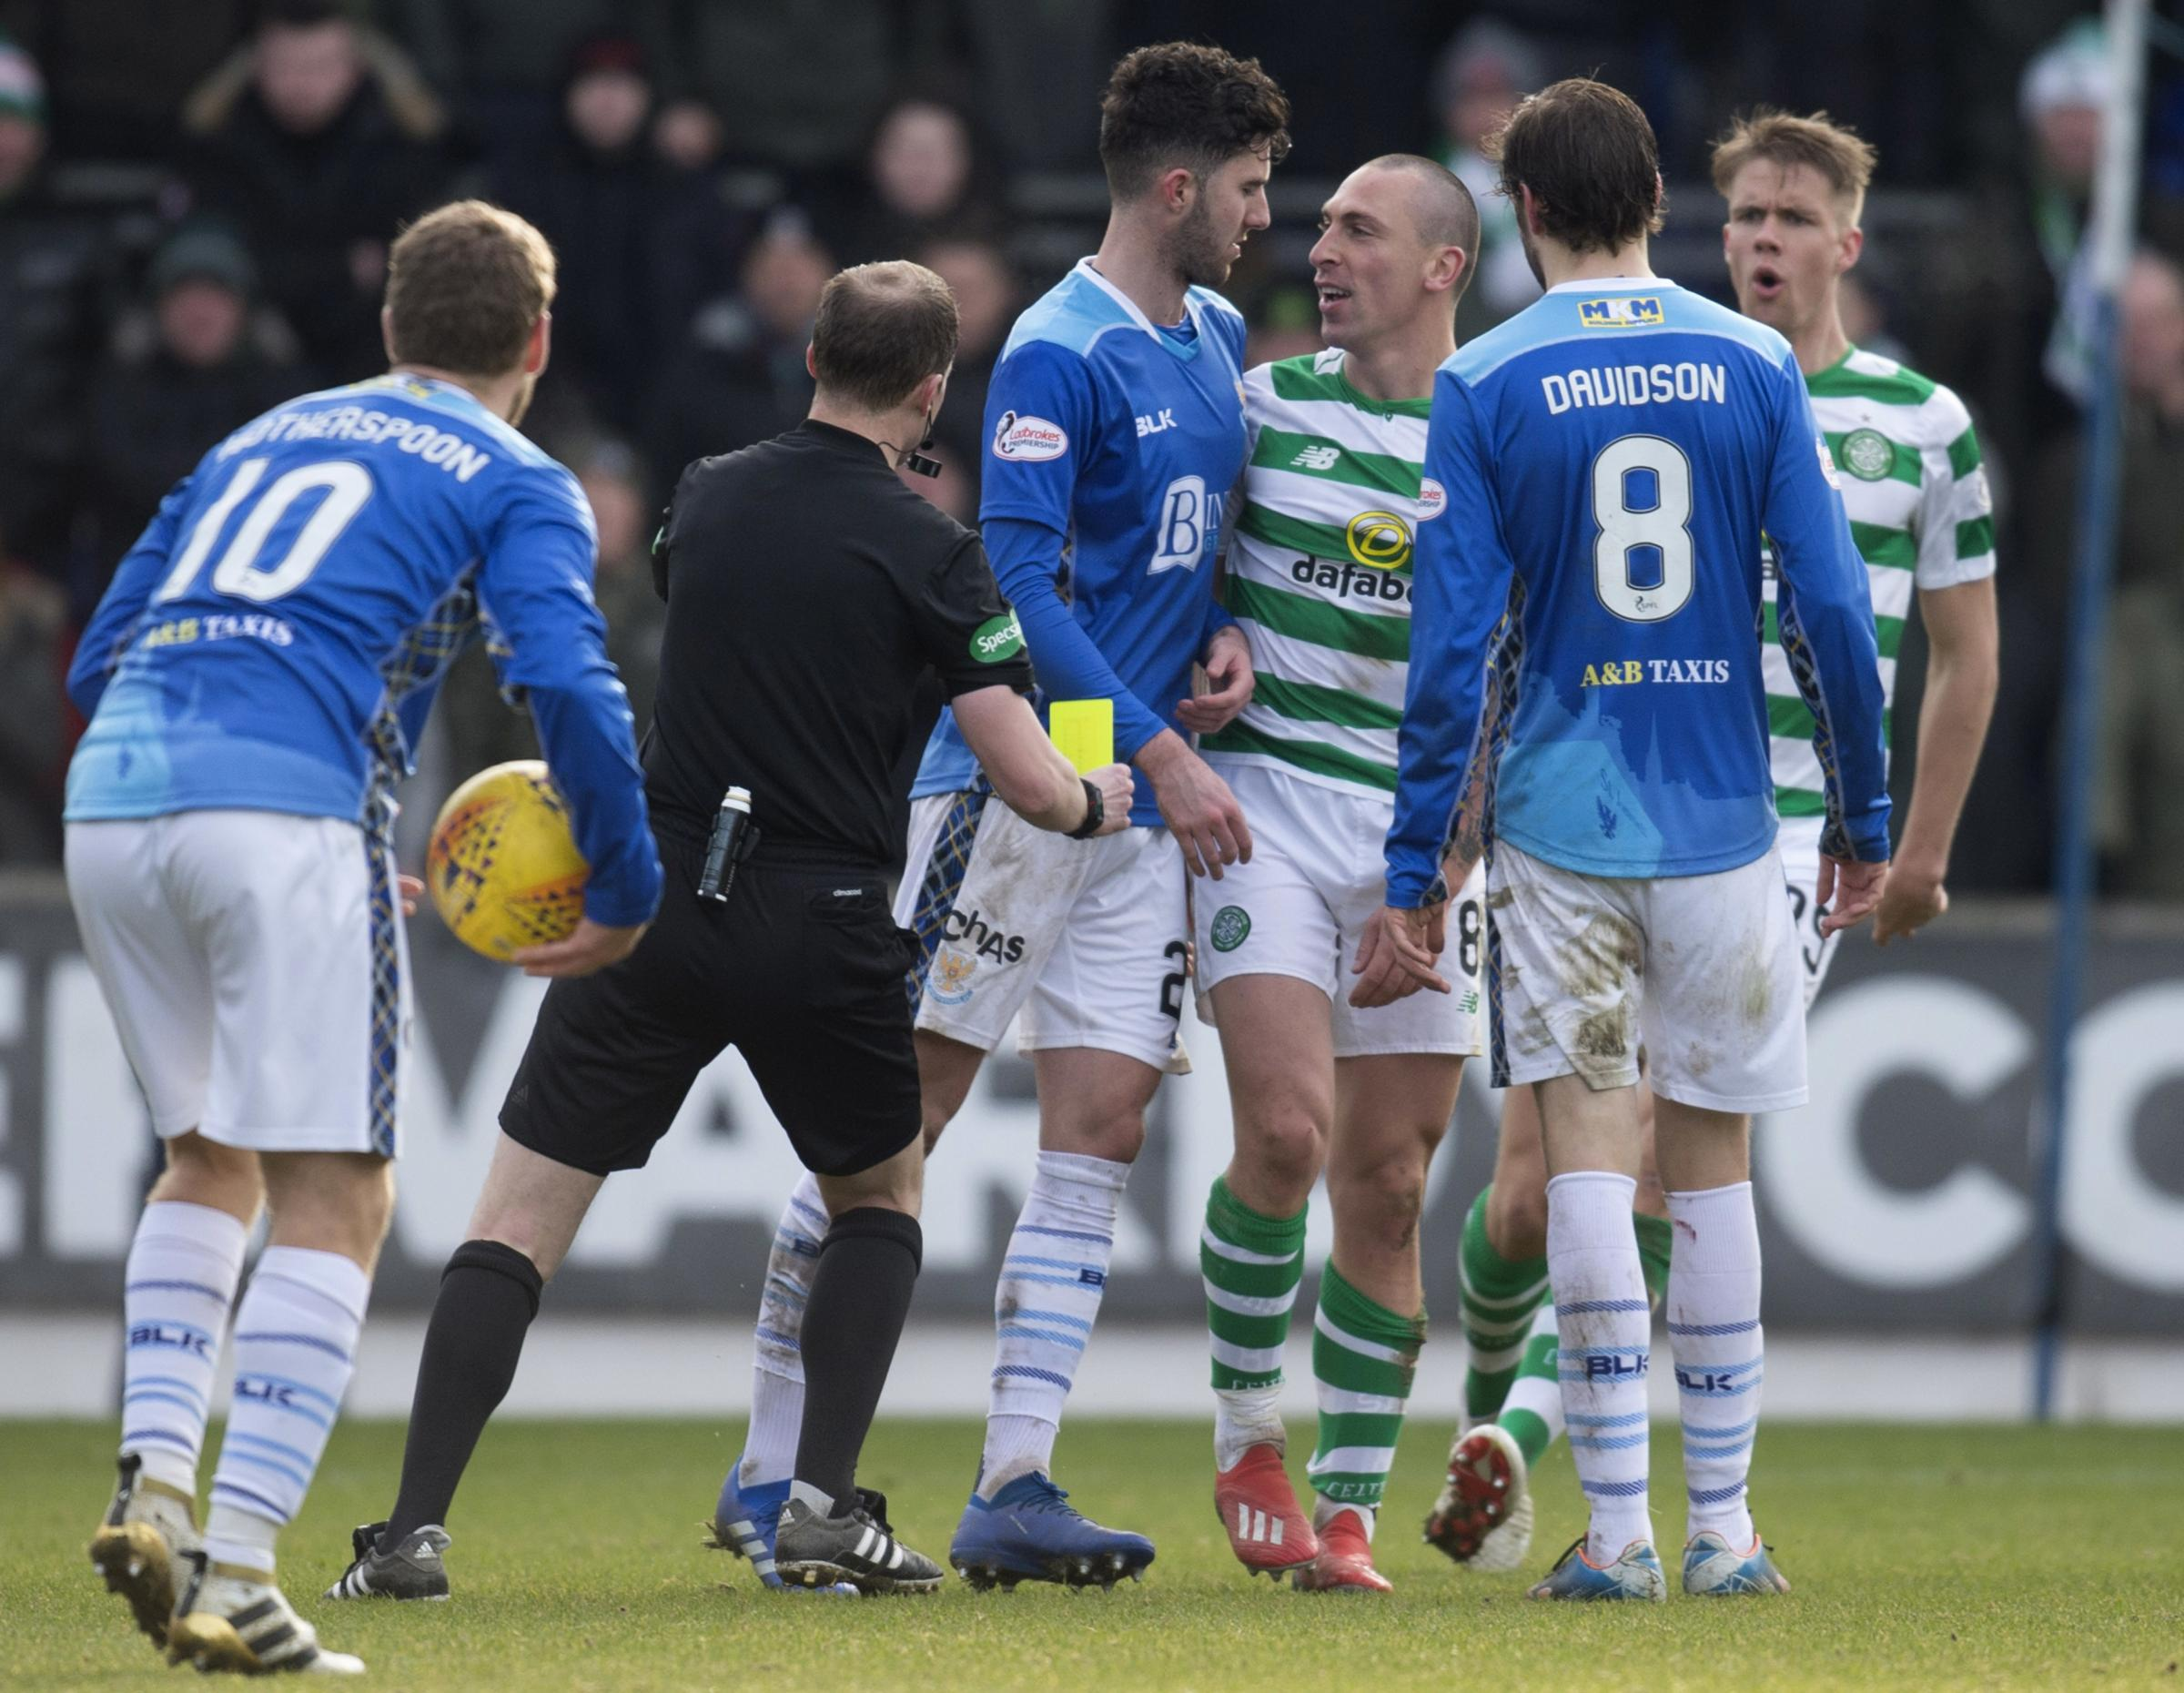 Sean Goss and Celtic captain Scott Brown square up to one another after a late tackle on the Celtic captain by the St Johnstone man.